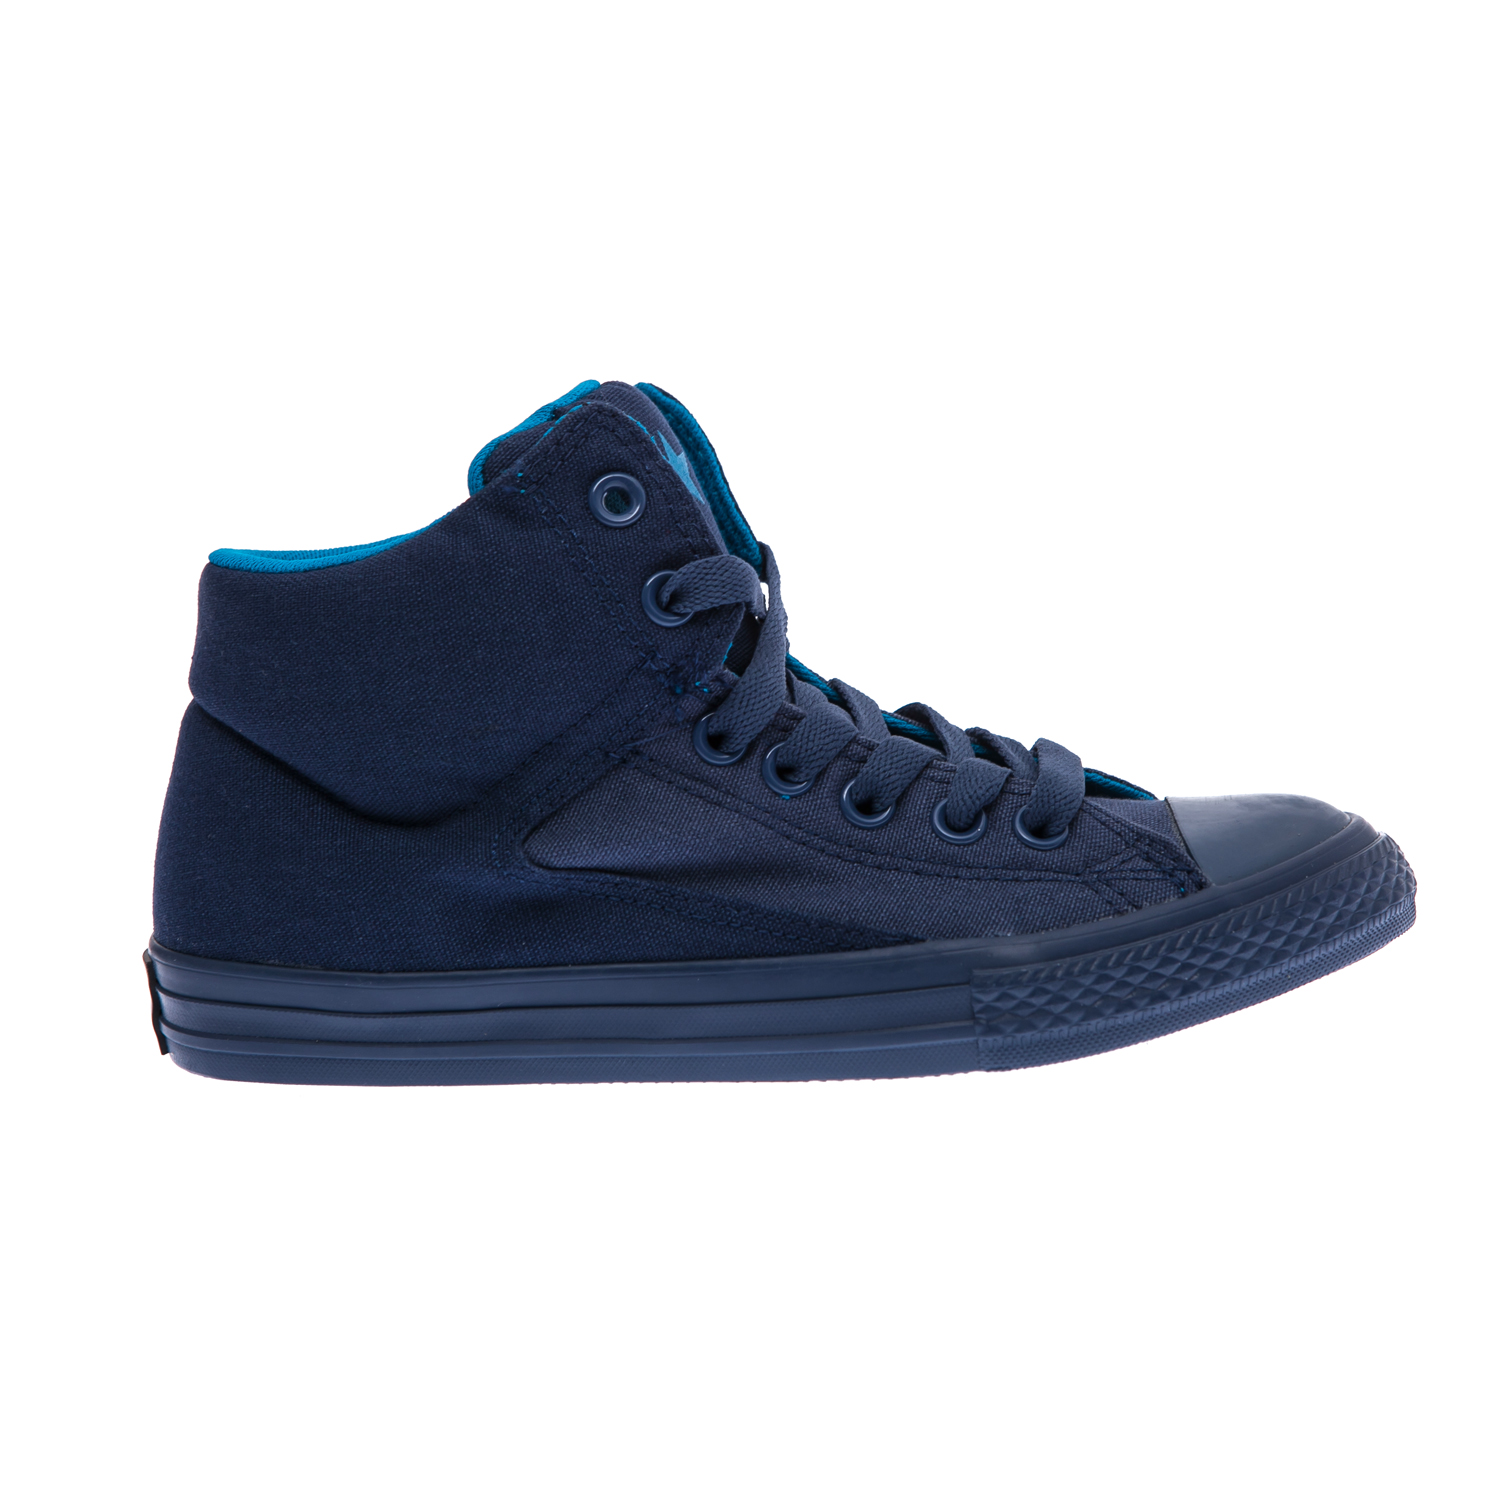 CONVERSE – Παιδικά παπούτσια Chuck Taylor All Star High Str μπλε